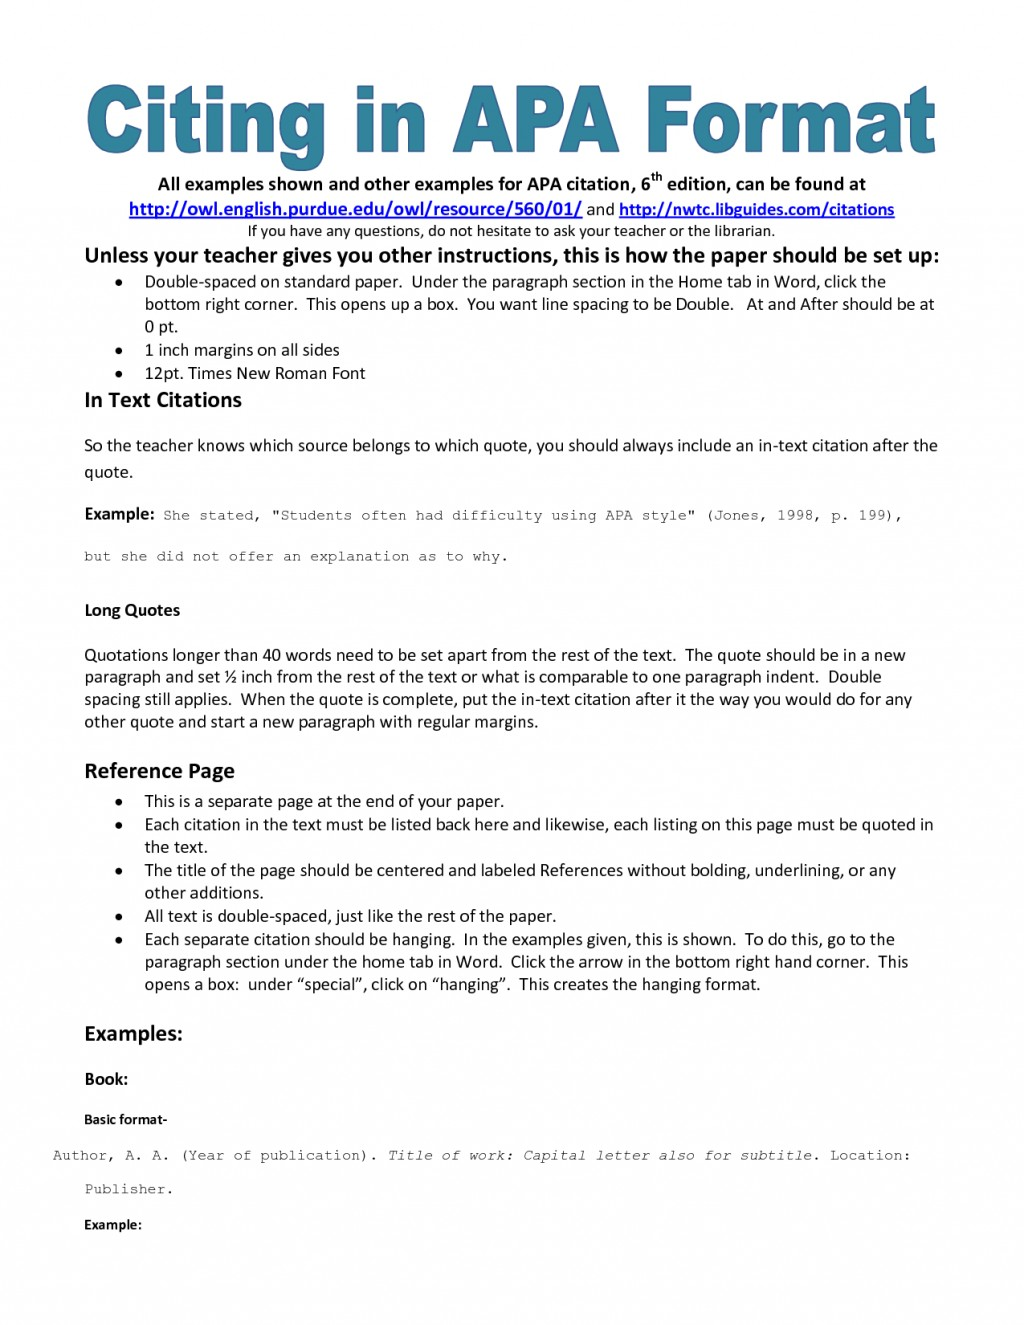 006 Essay Example In Apa Format Shocking Papers Written Research Paper Large